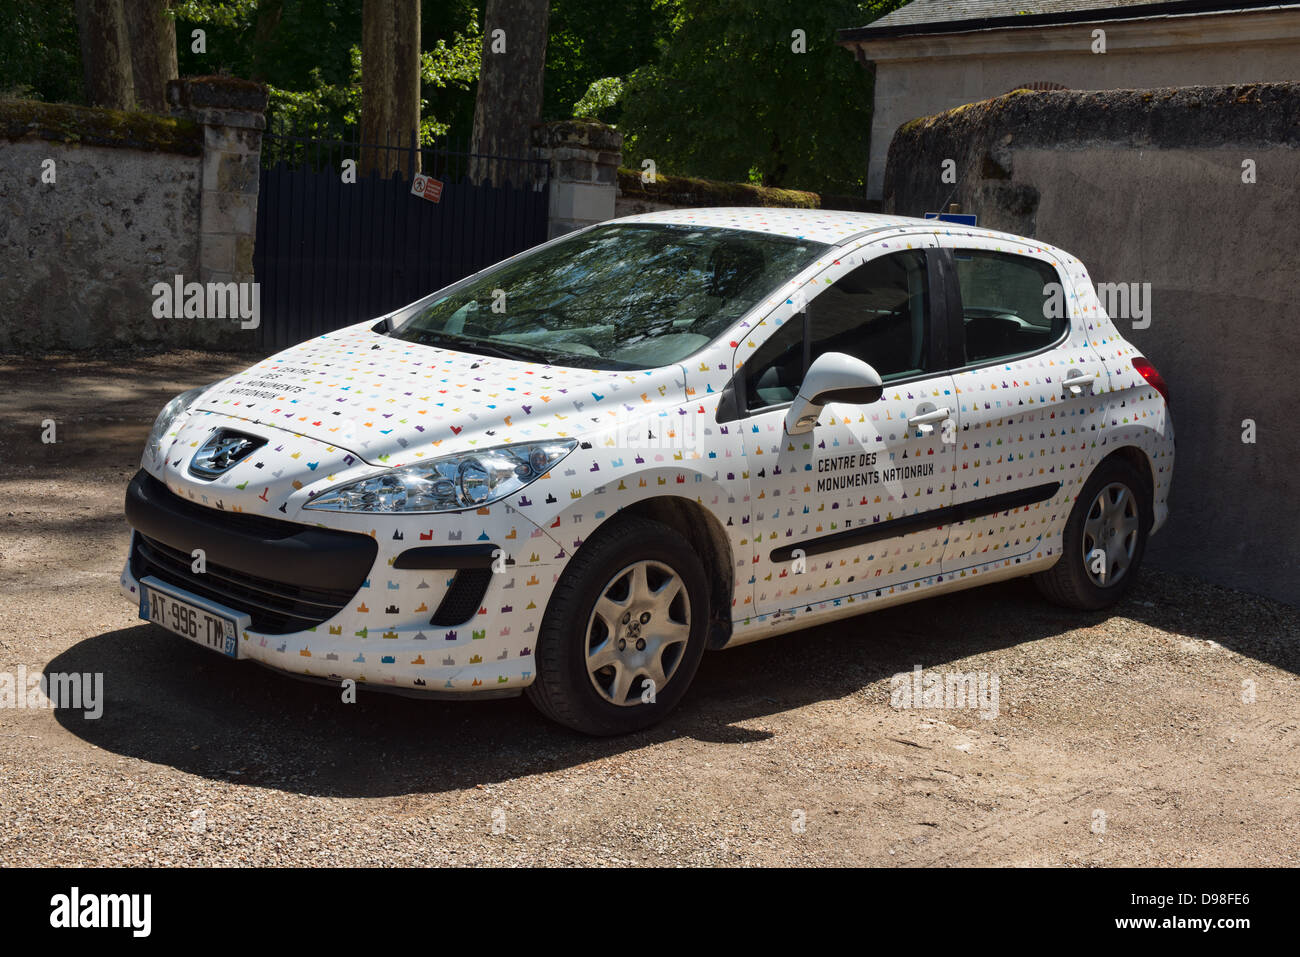 a parked peugeot 208 company car in the advertising livery of the